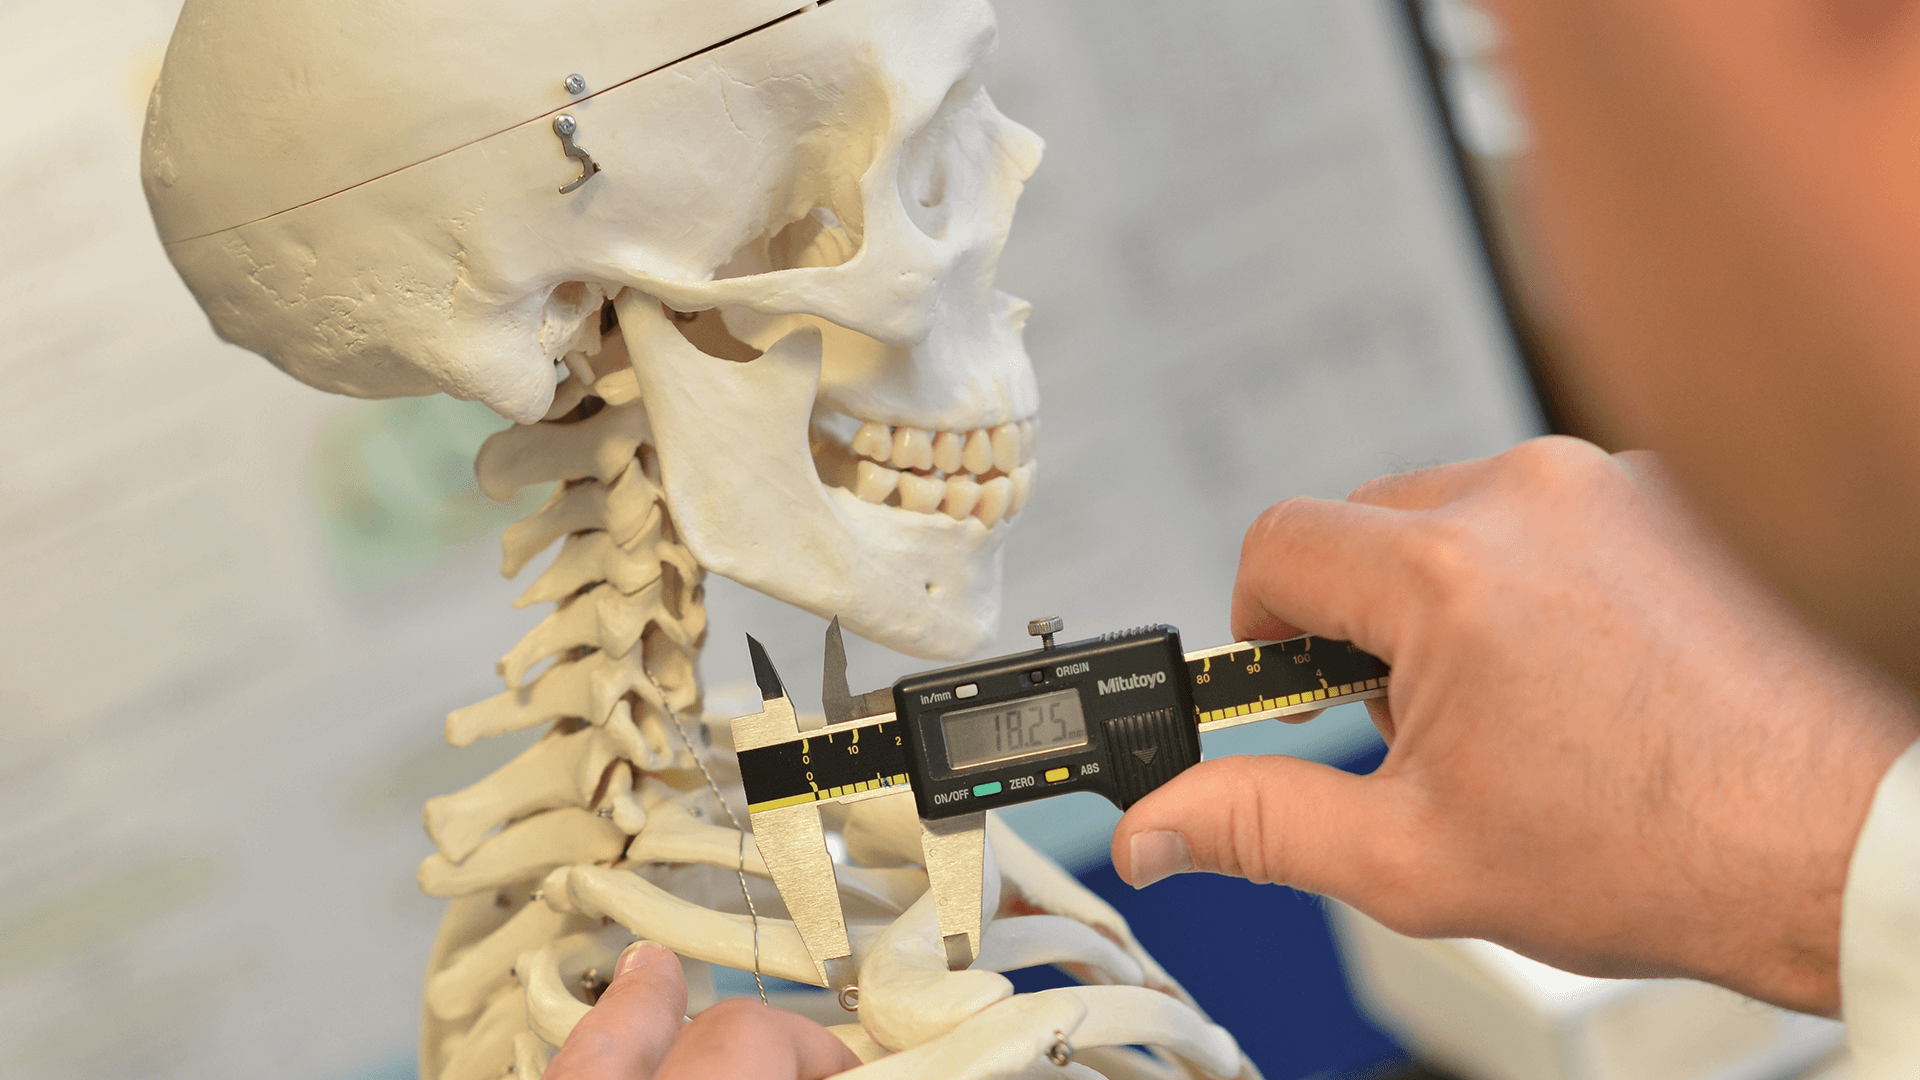 Prerequisites for a Masters in BioMedical Engineering?